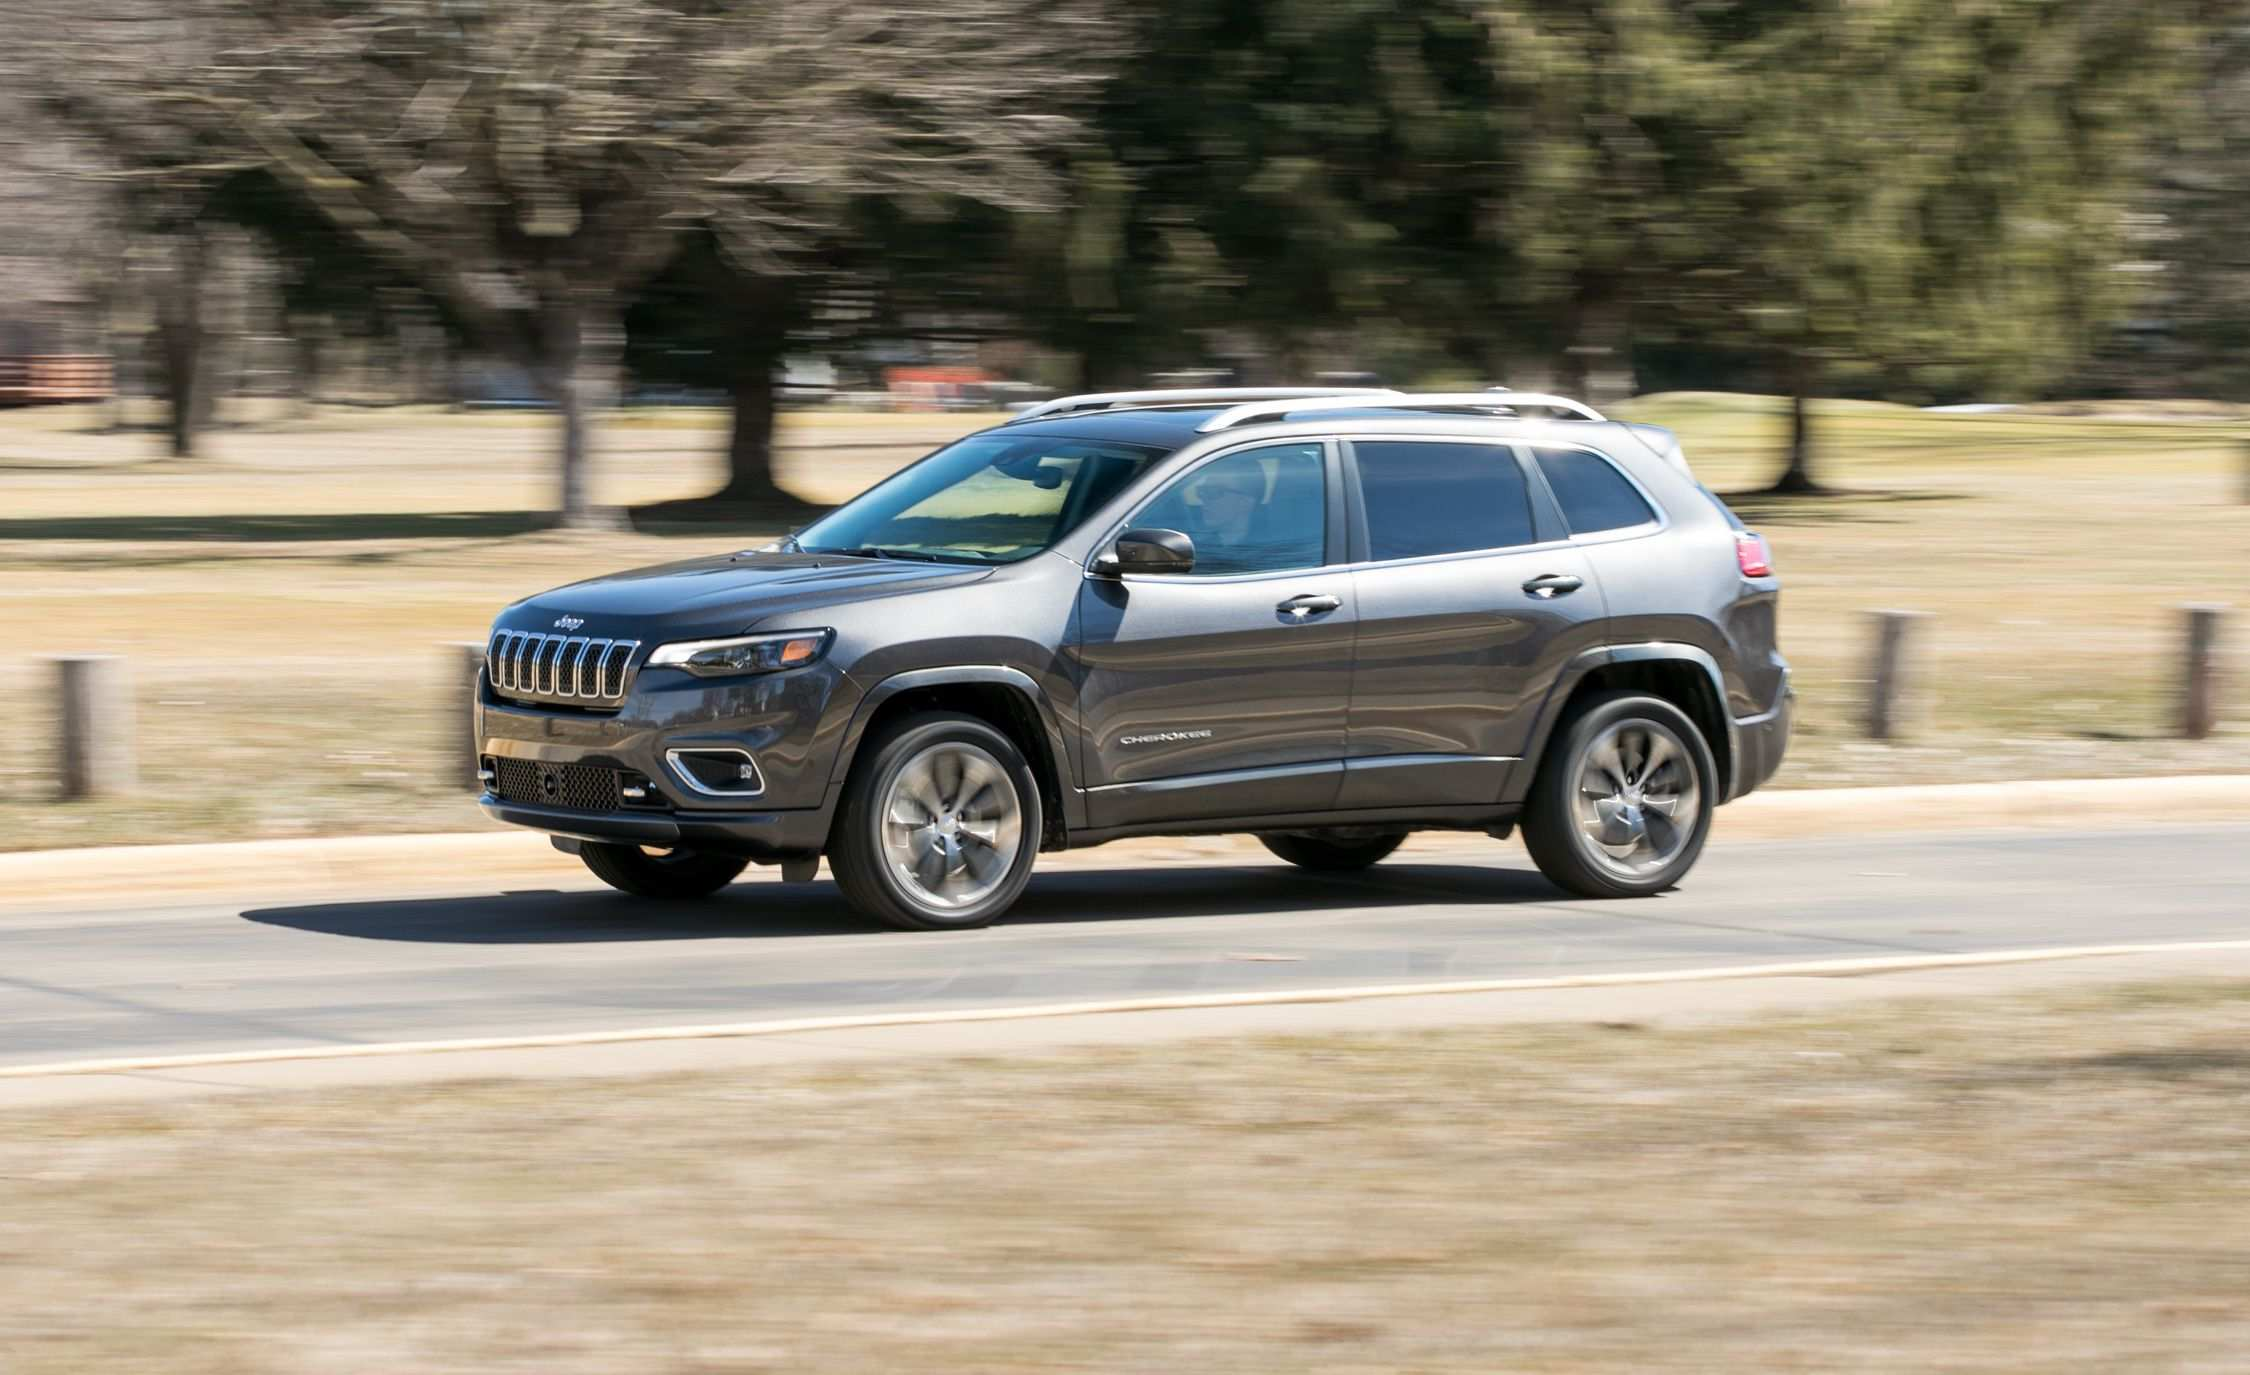 38 Best Review Best Cherokee Jeep 2019 Review Specs And Review New Concept by Best Cherokee Jeep 2019 Review Specs And Review